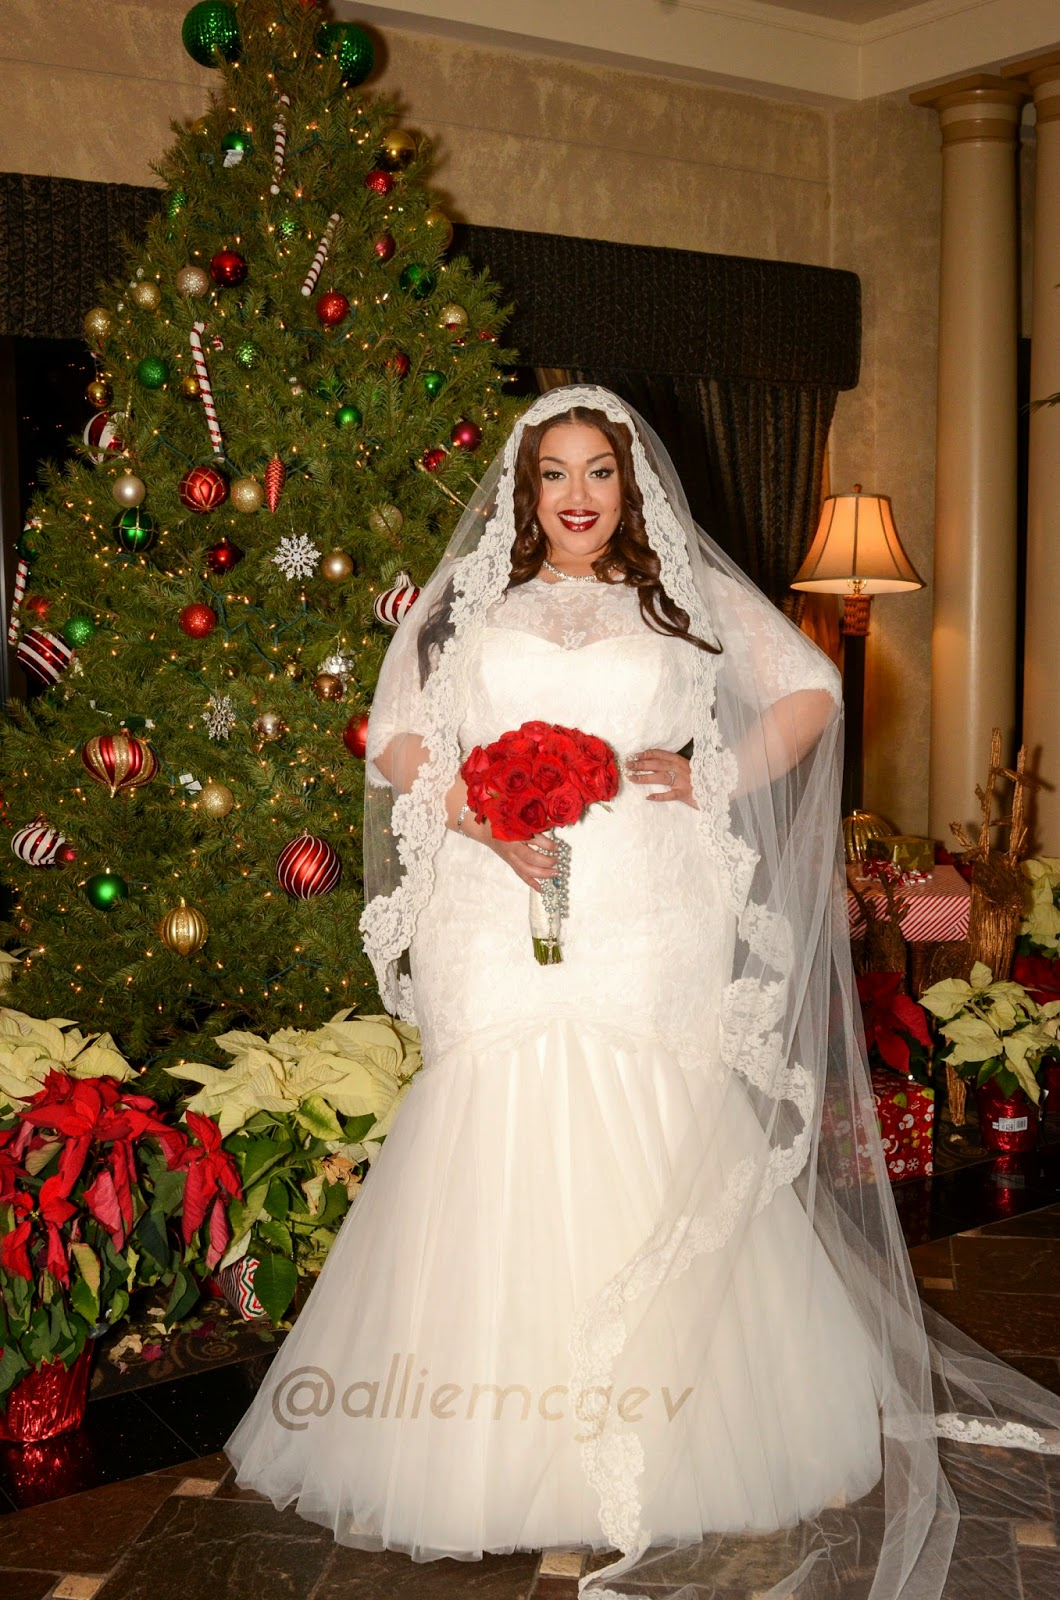 92d0c37859f The Ultimate Guide to Plus Size Wedding Dress Shopping - Inside ...